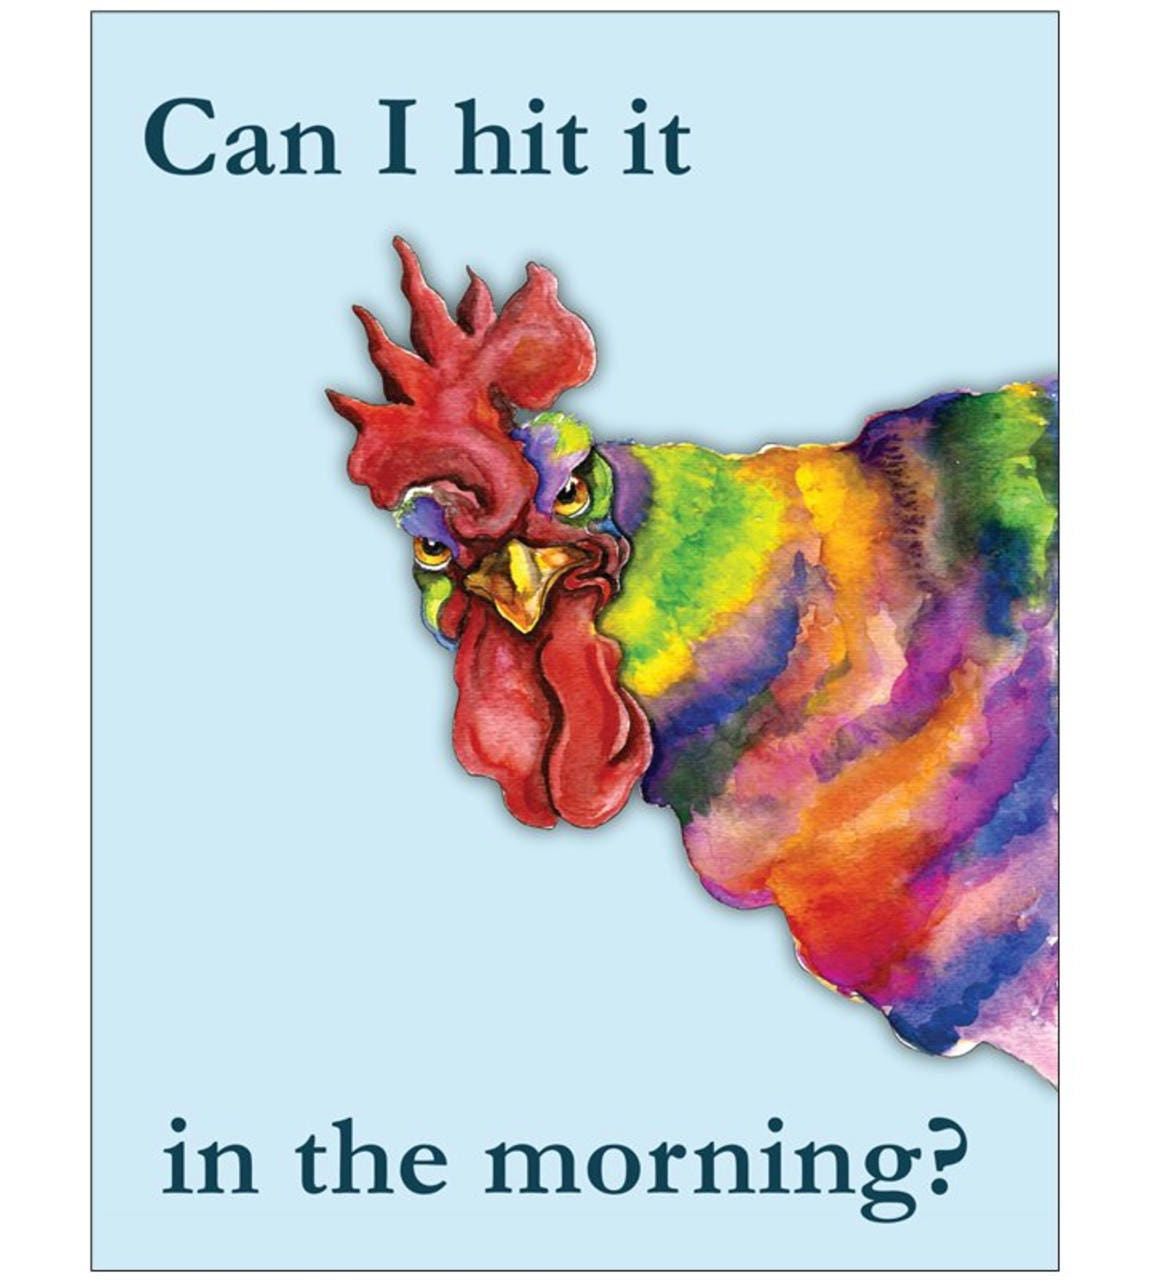 Funny Cock Pics can i hit it in the morning rooster greeting card, funny cock card,  boyfriend /girlfriend blank greeting card, sexy valentine card